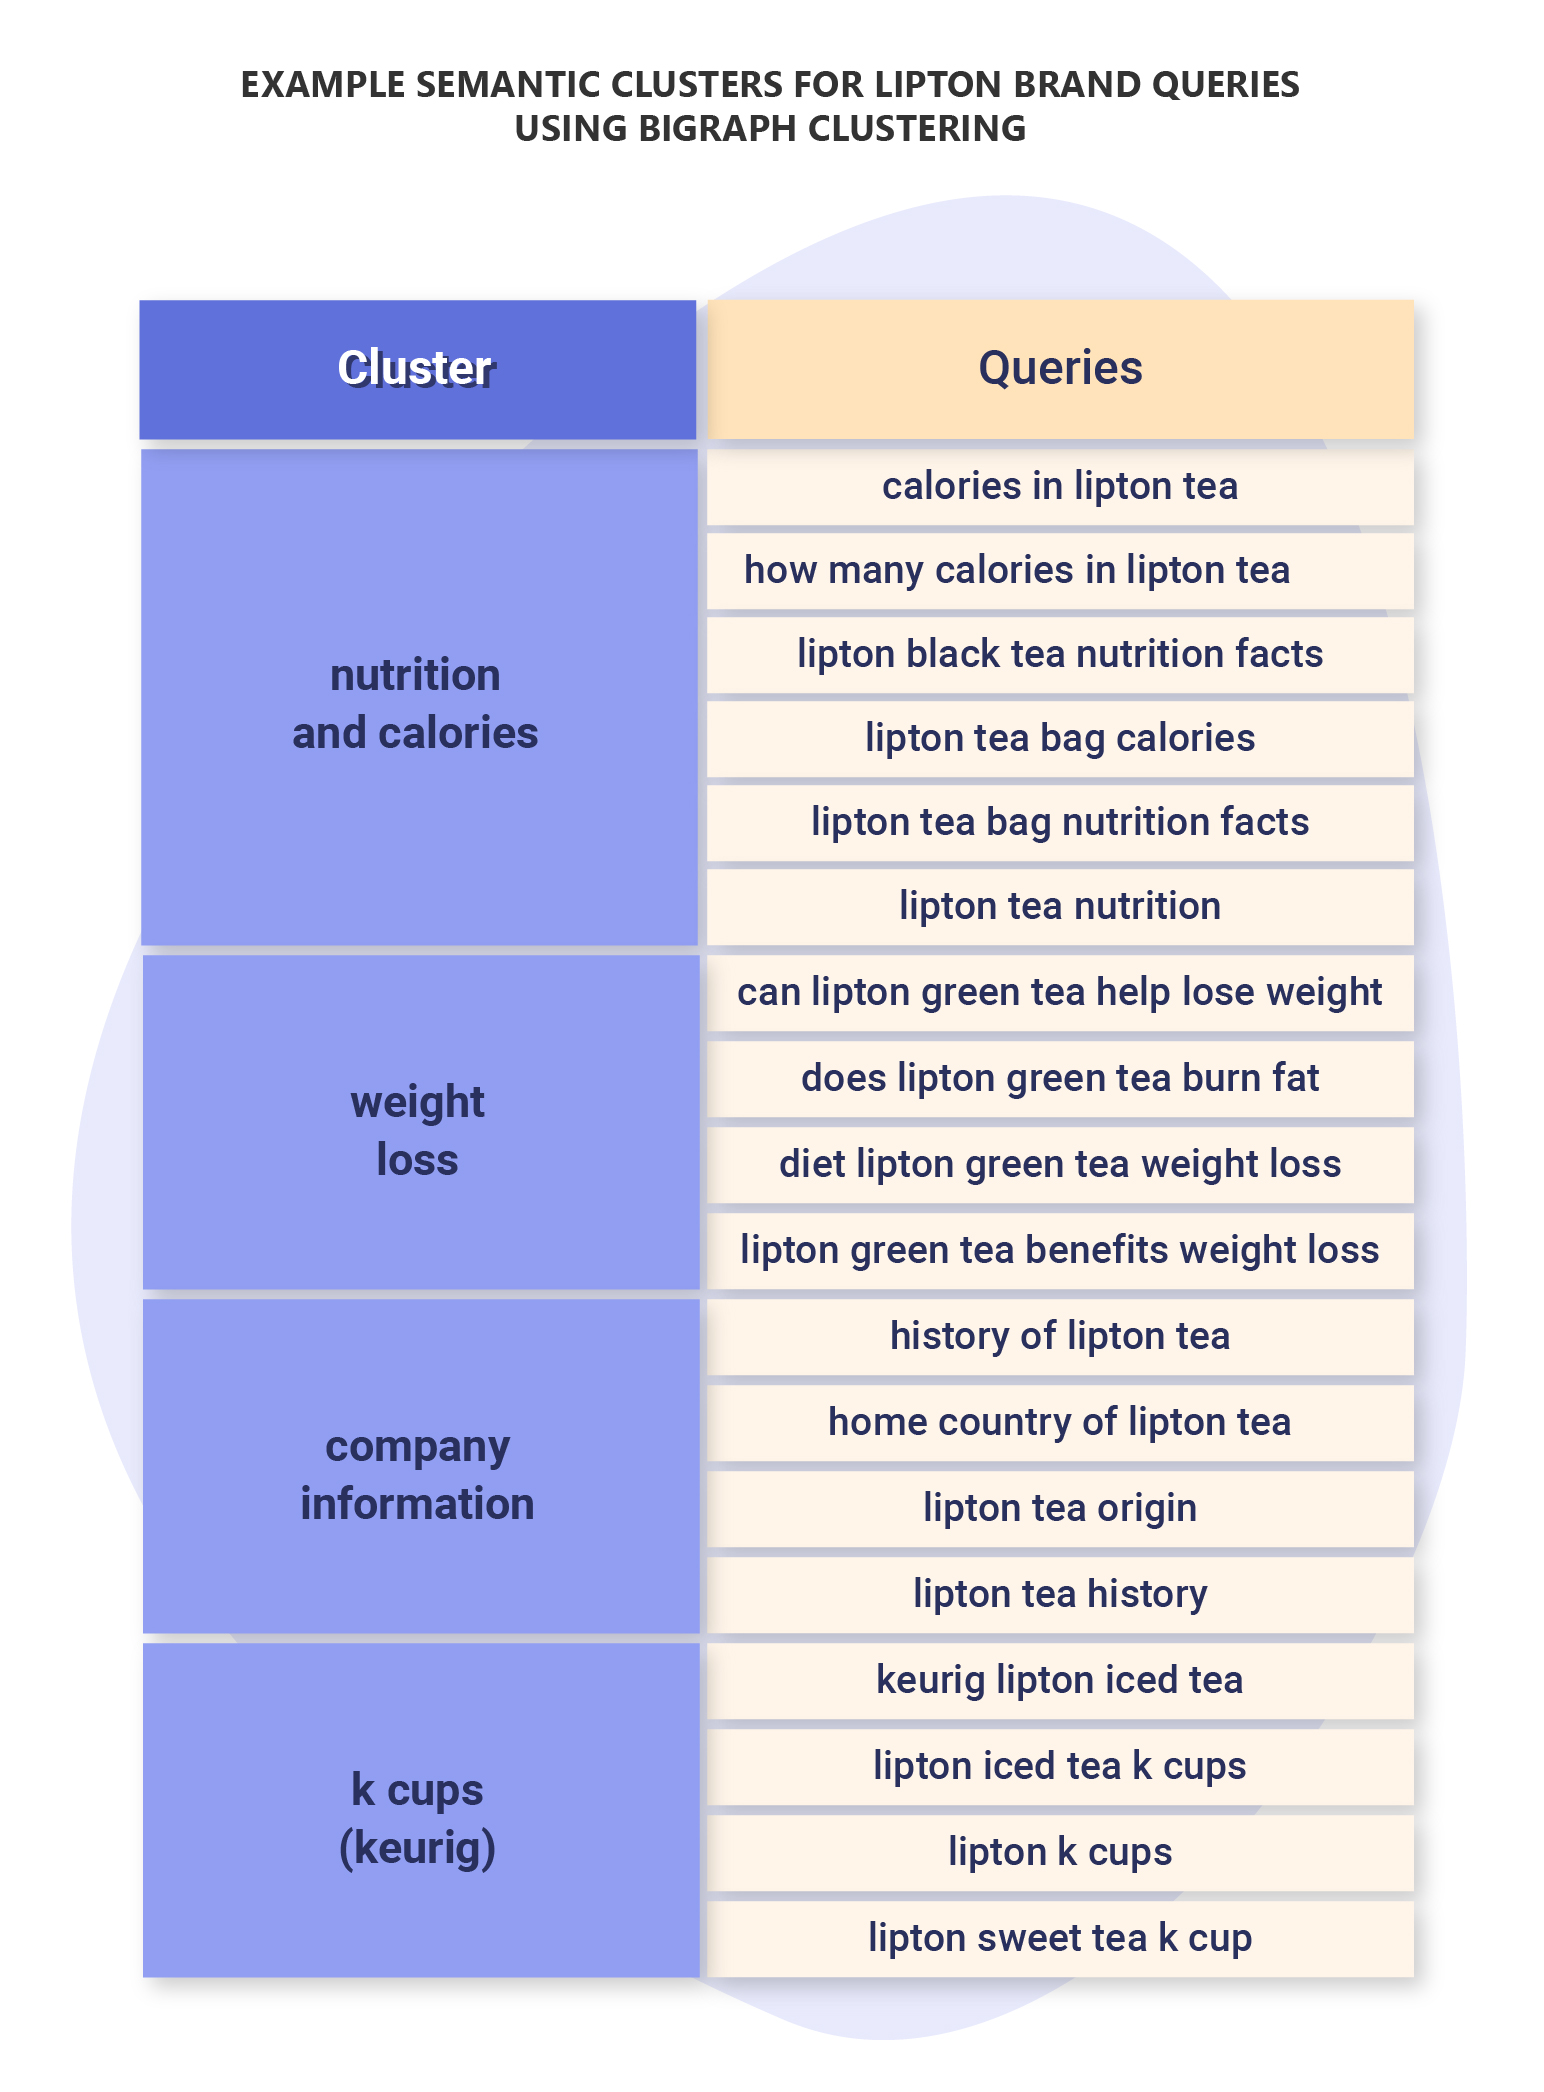 Example semantic clusters for lipton brand queries using bigraph clustering